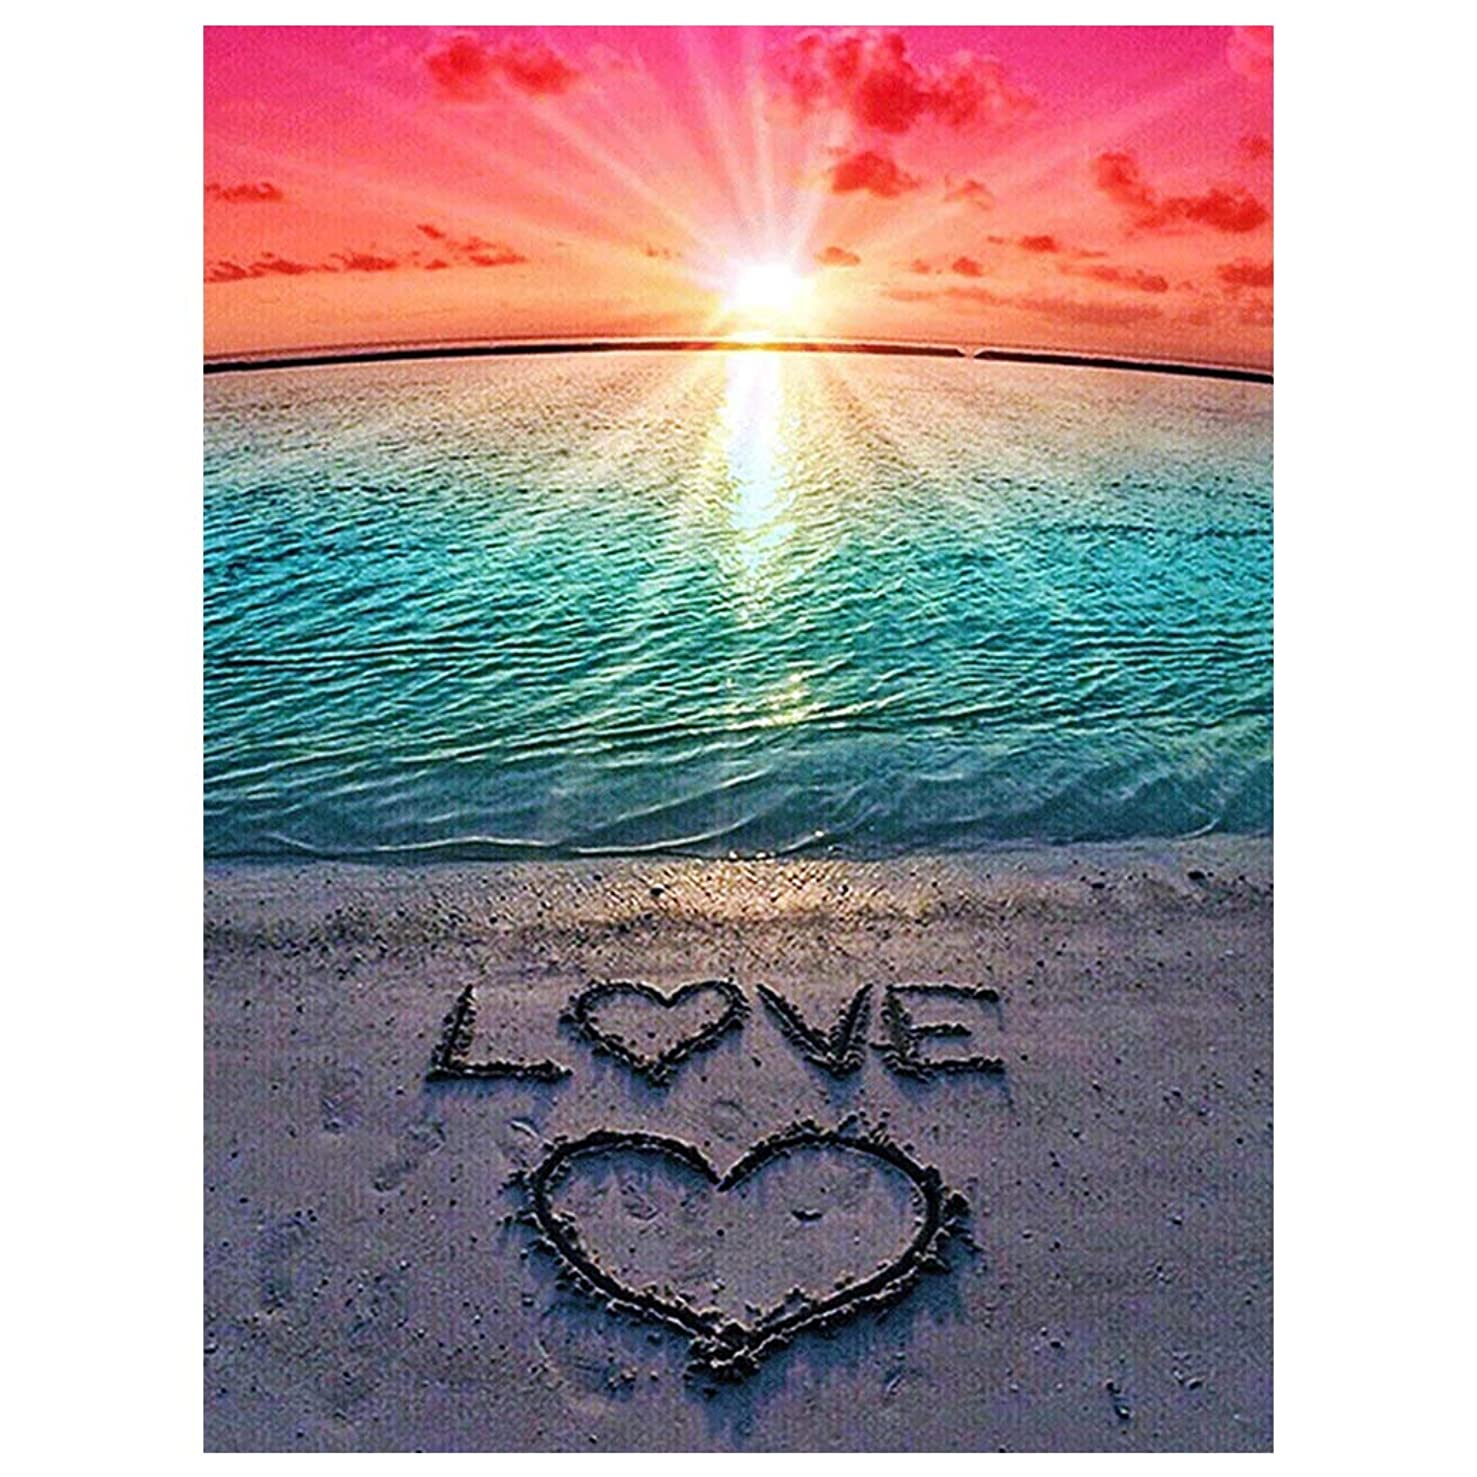 mifengda DIY 5D Diamond Painting Kits Full Drill Diamond Embroidery Paintings Pictures by Number for Adults Kids for Home Wall Decor Study Room, Love Beach (30x40cm/11.8x15.7